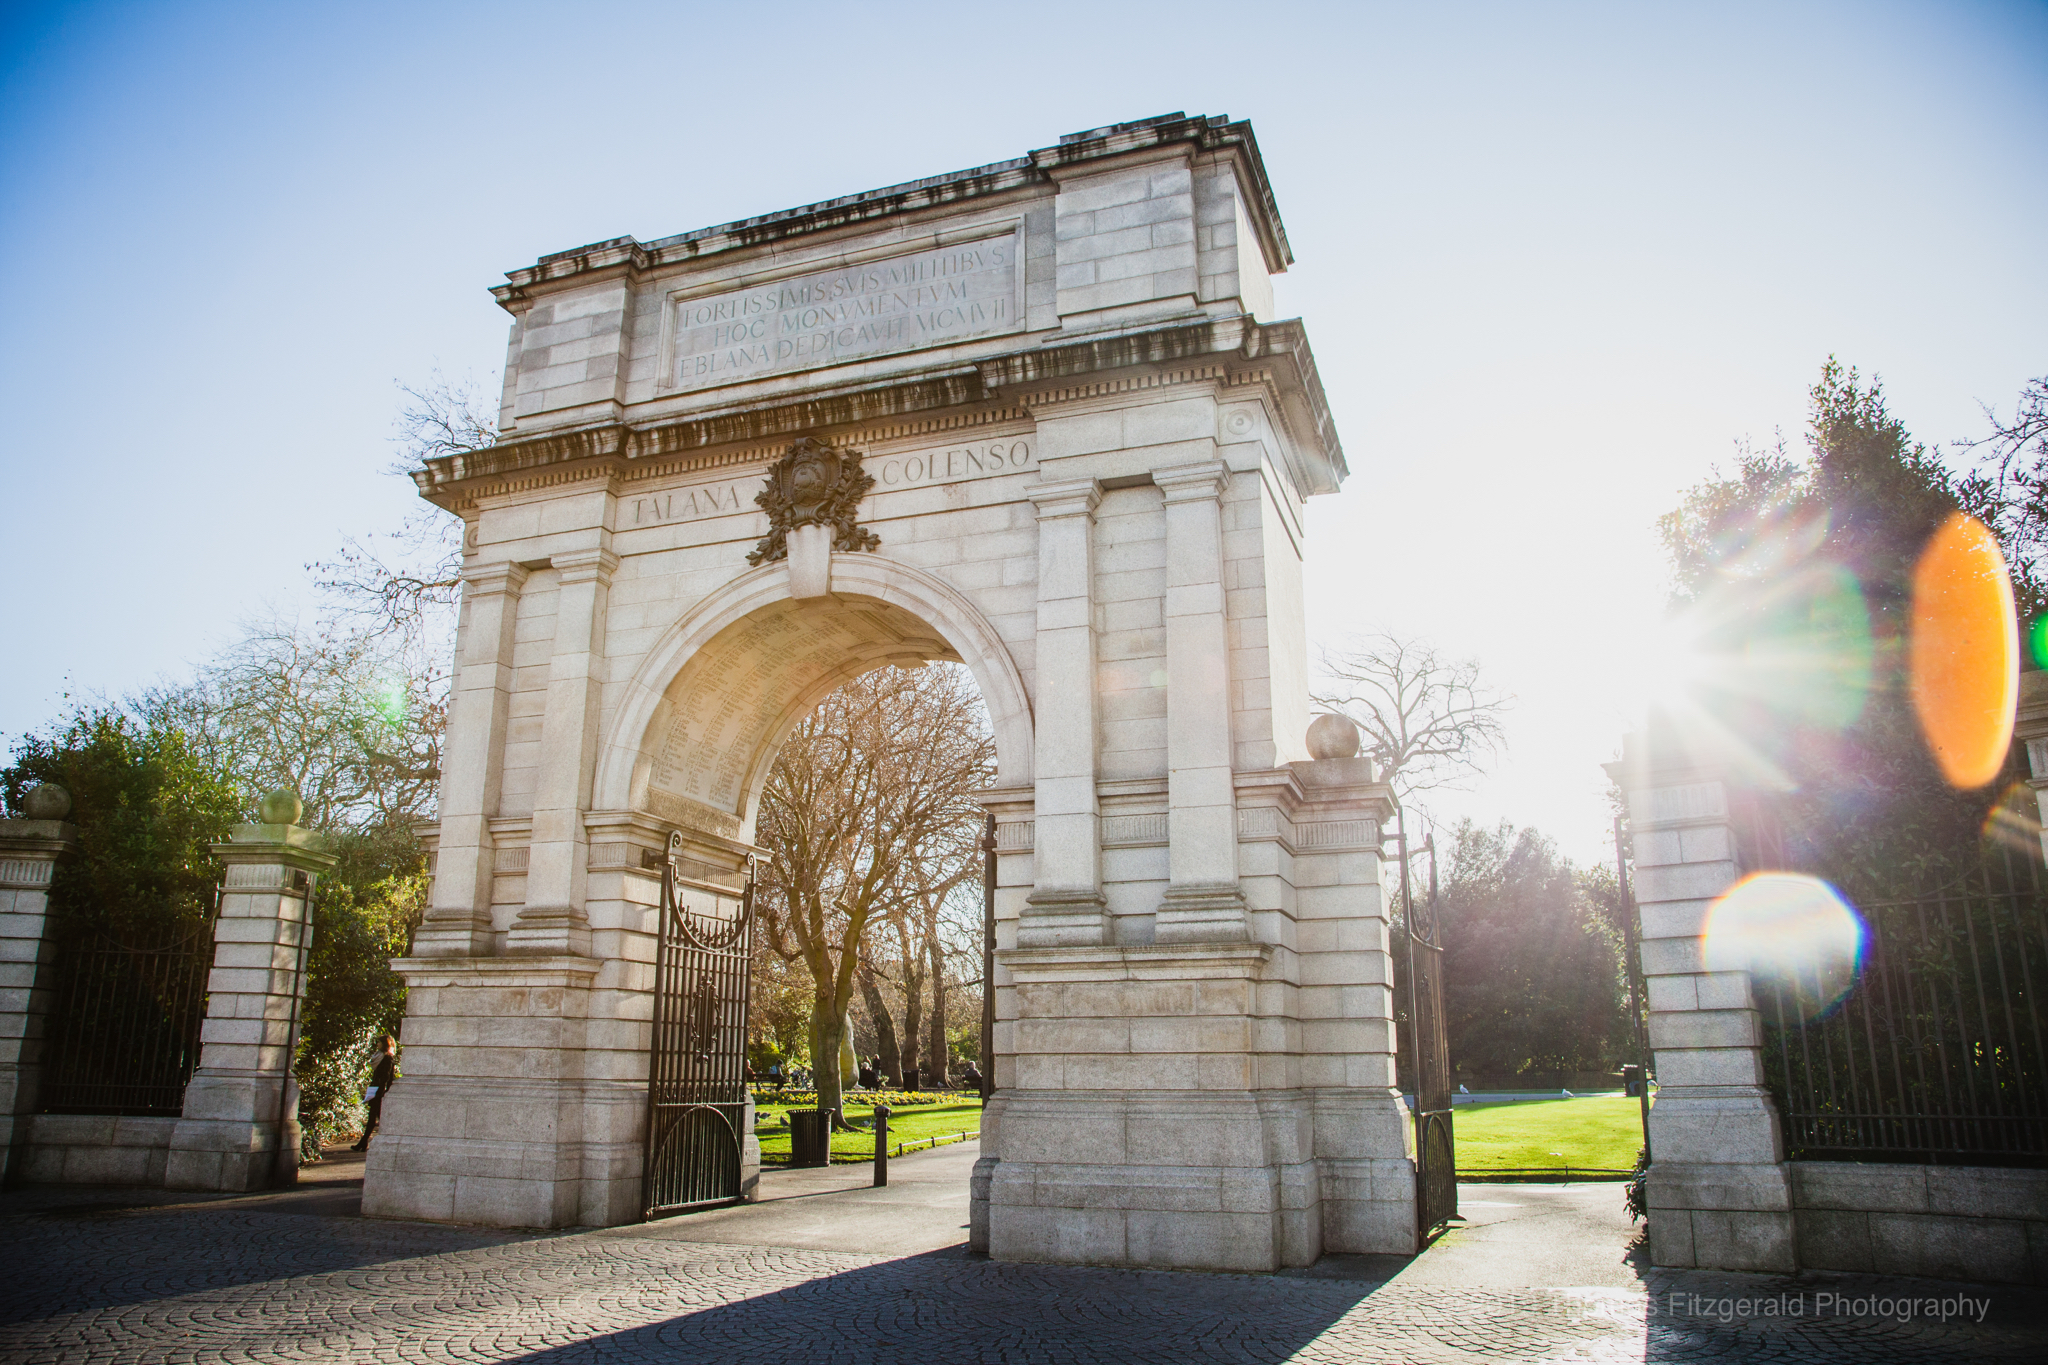 Arch at Stephen's Green